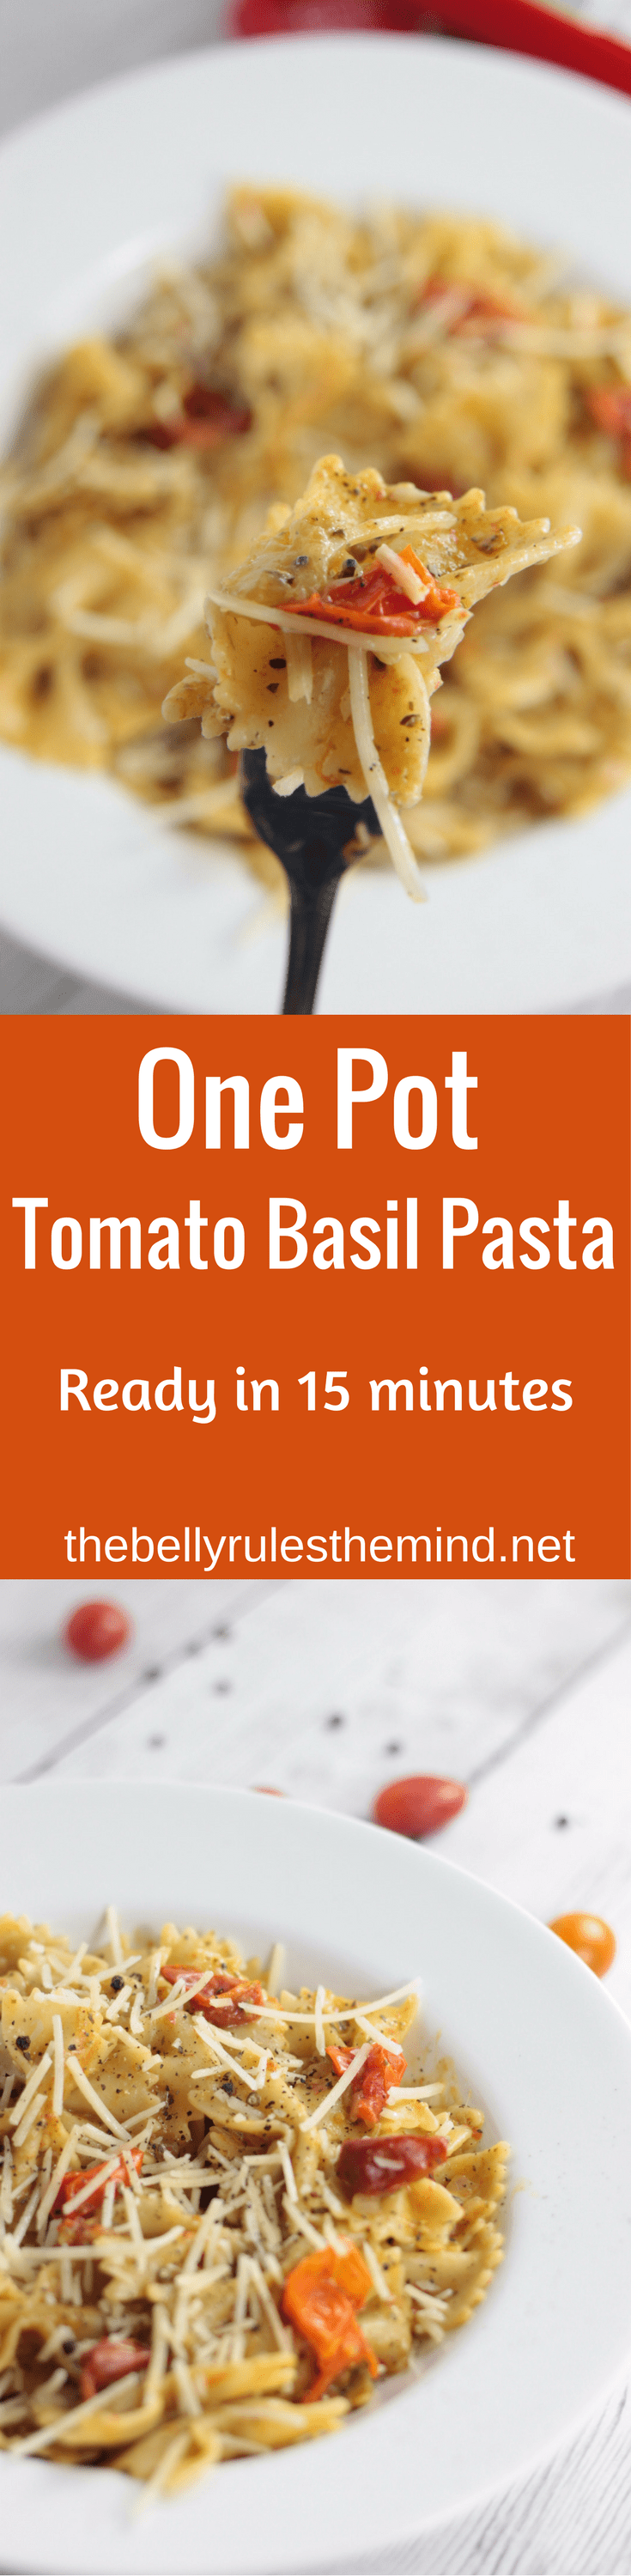 Easiest ever Summer Pasta . Ready in 15 minutes. Perfect for quick weeknight dinner|www.thebellyrulesthemind.net @bellyrulesdmind